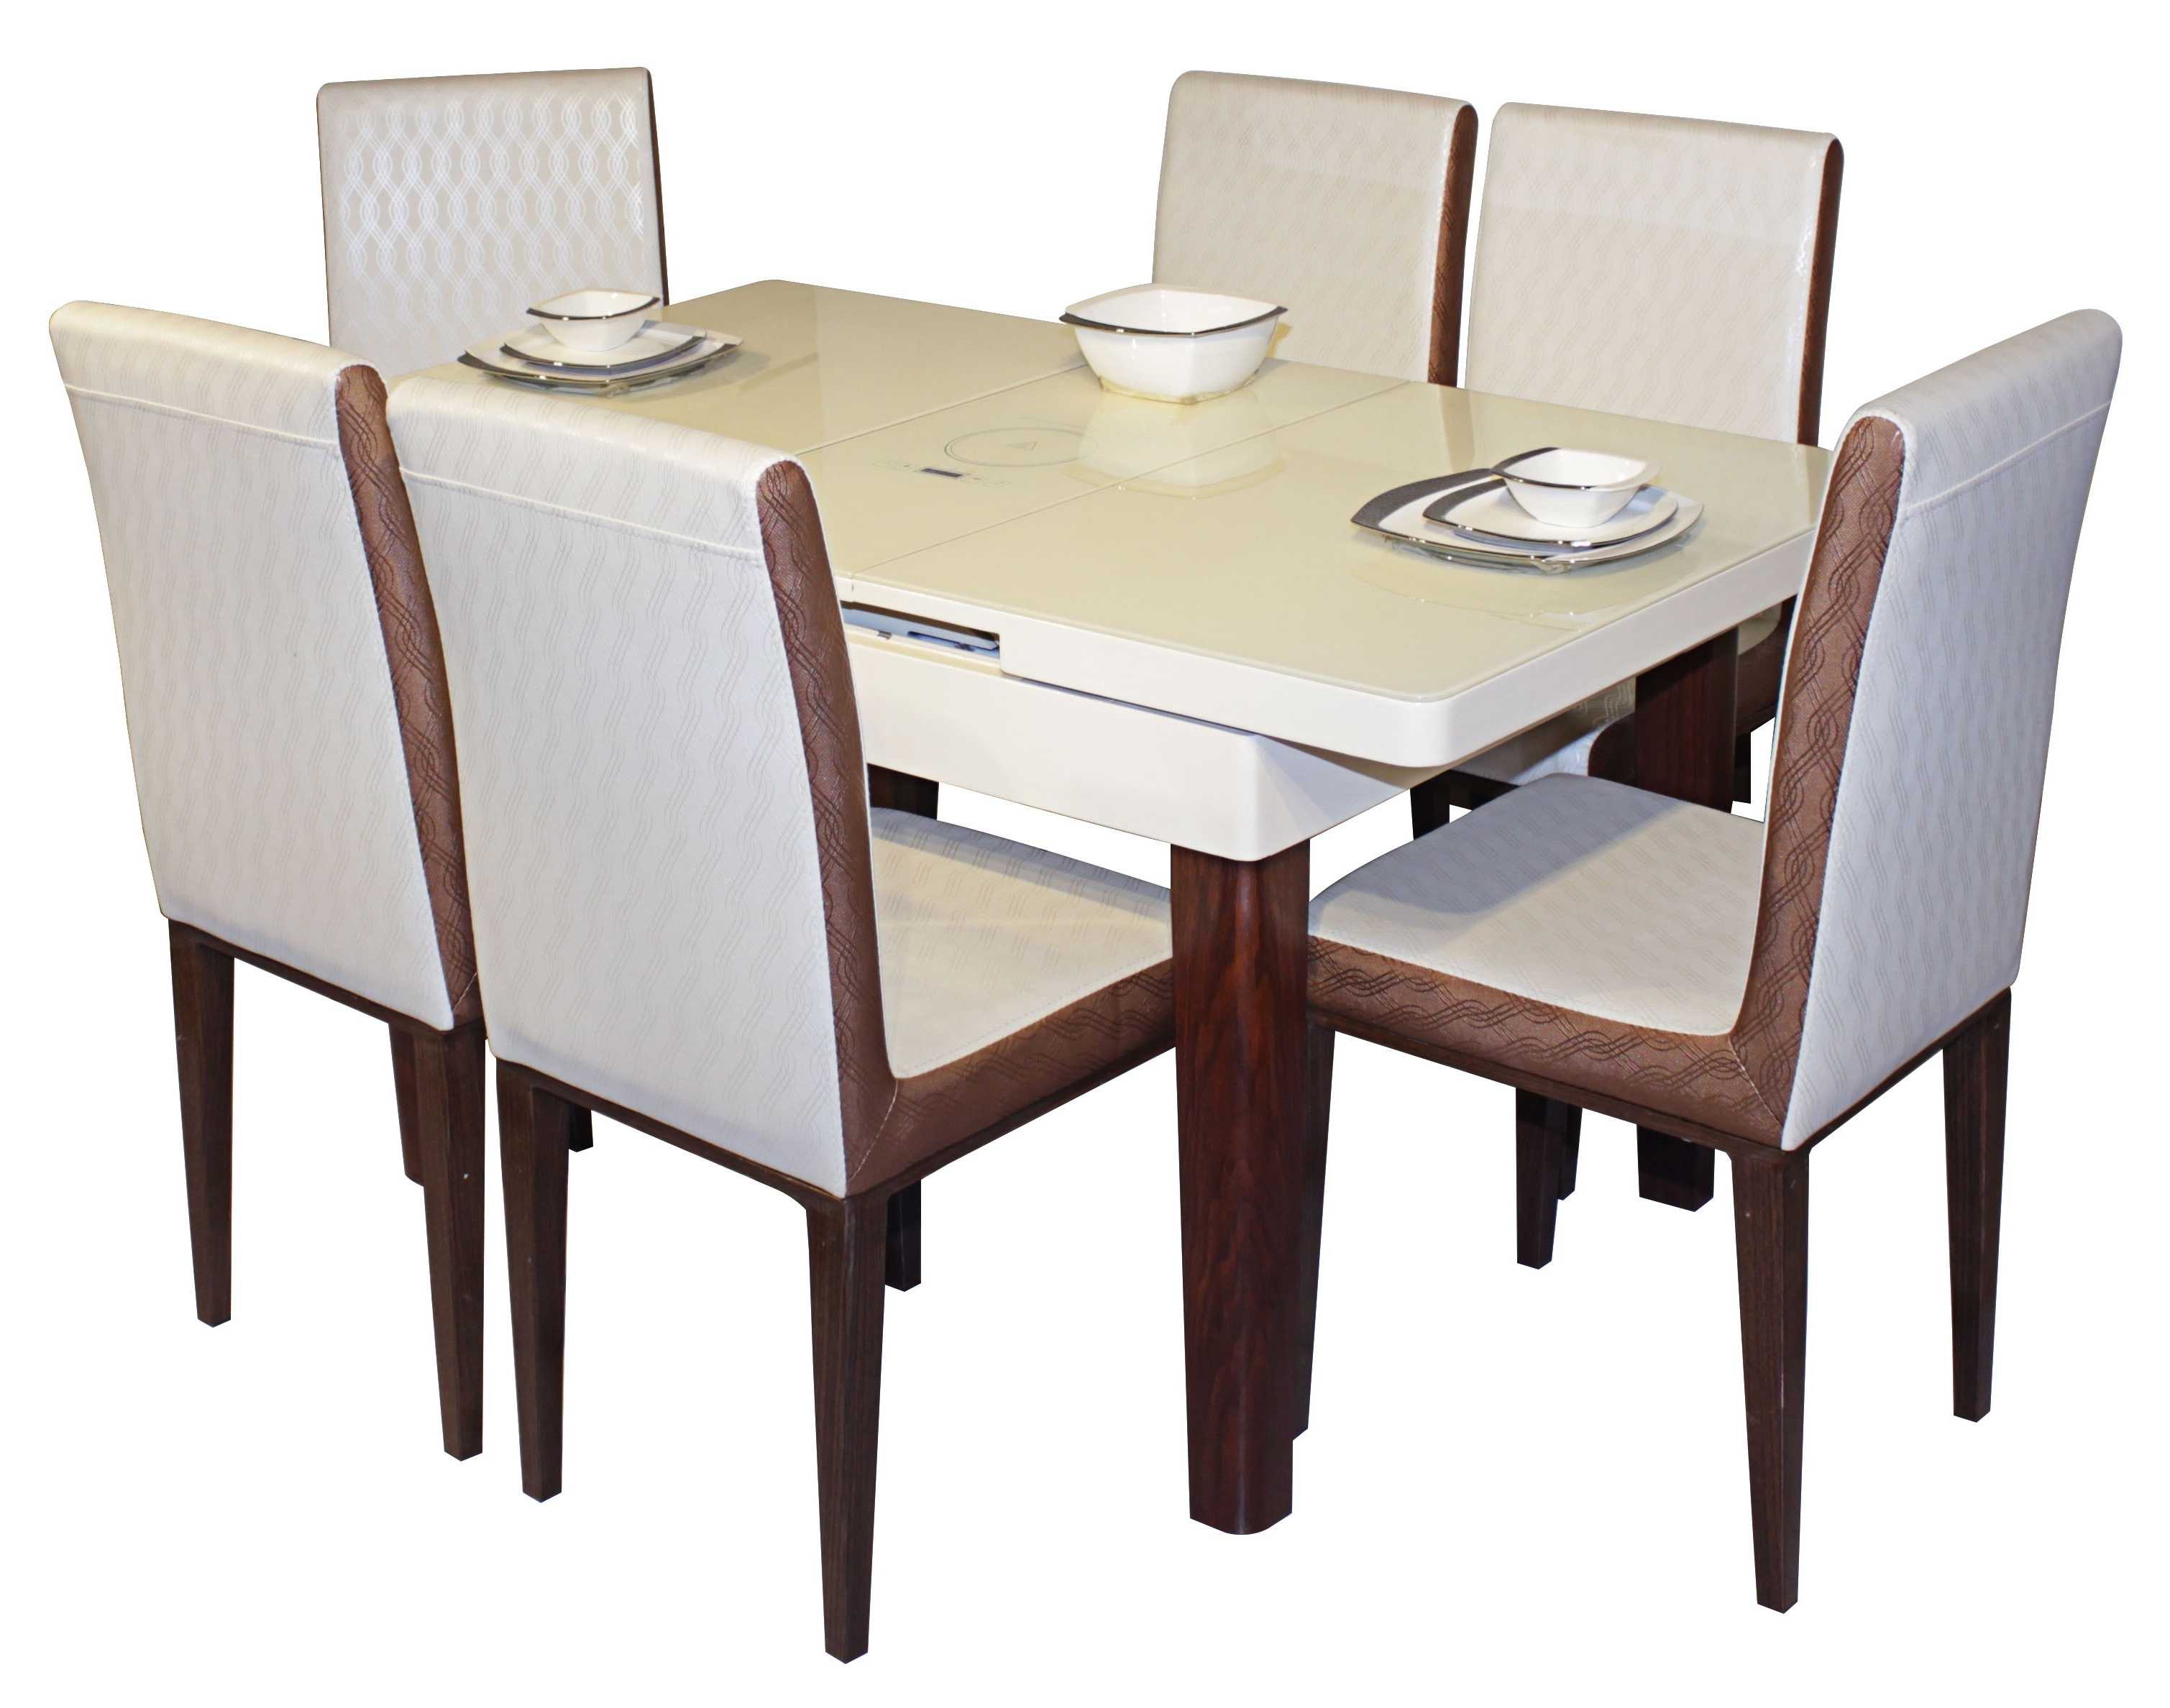 Six Seater Dining Tables In Best And Newest 6 Seater Dining Table And Chairs 6 Seater Dining Table And Chairs India (View 10 of 25)